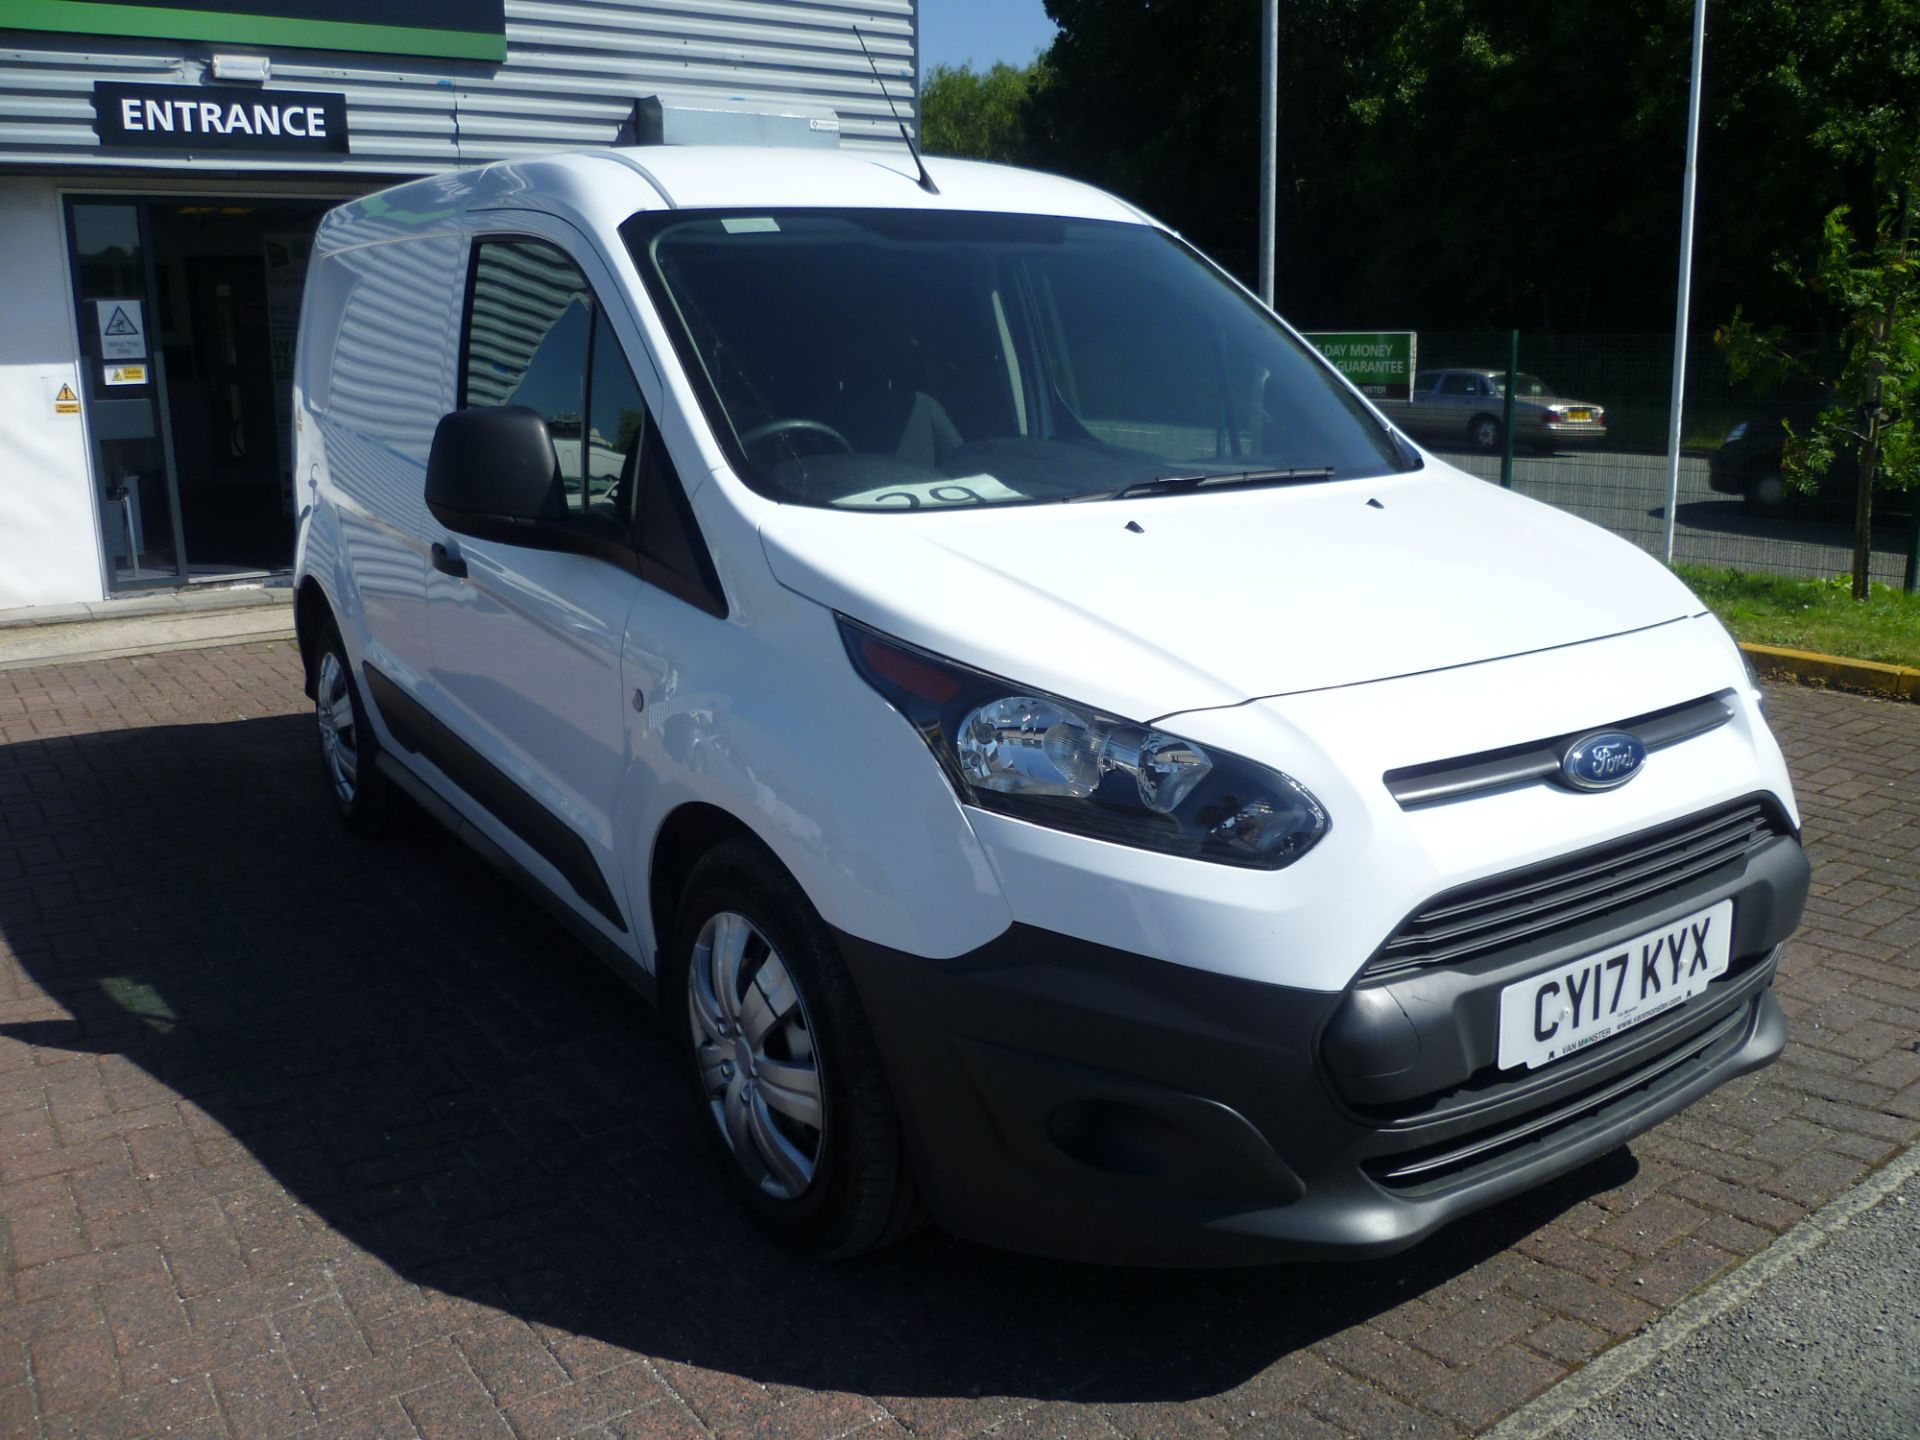 2017 Ford Transit Connect  220 L1 DIESEL 1.5 TDCi 100ps EURO 6 (CY17KYX)